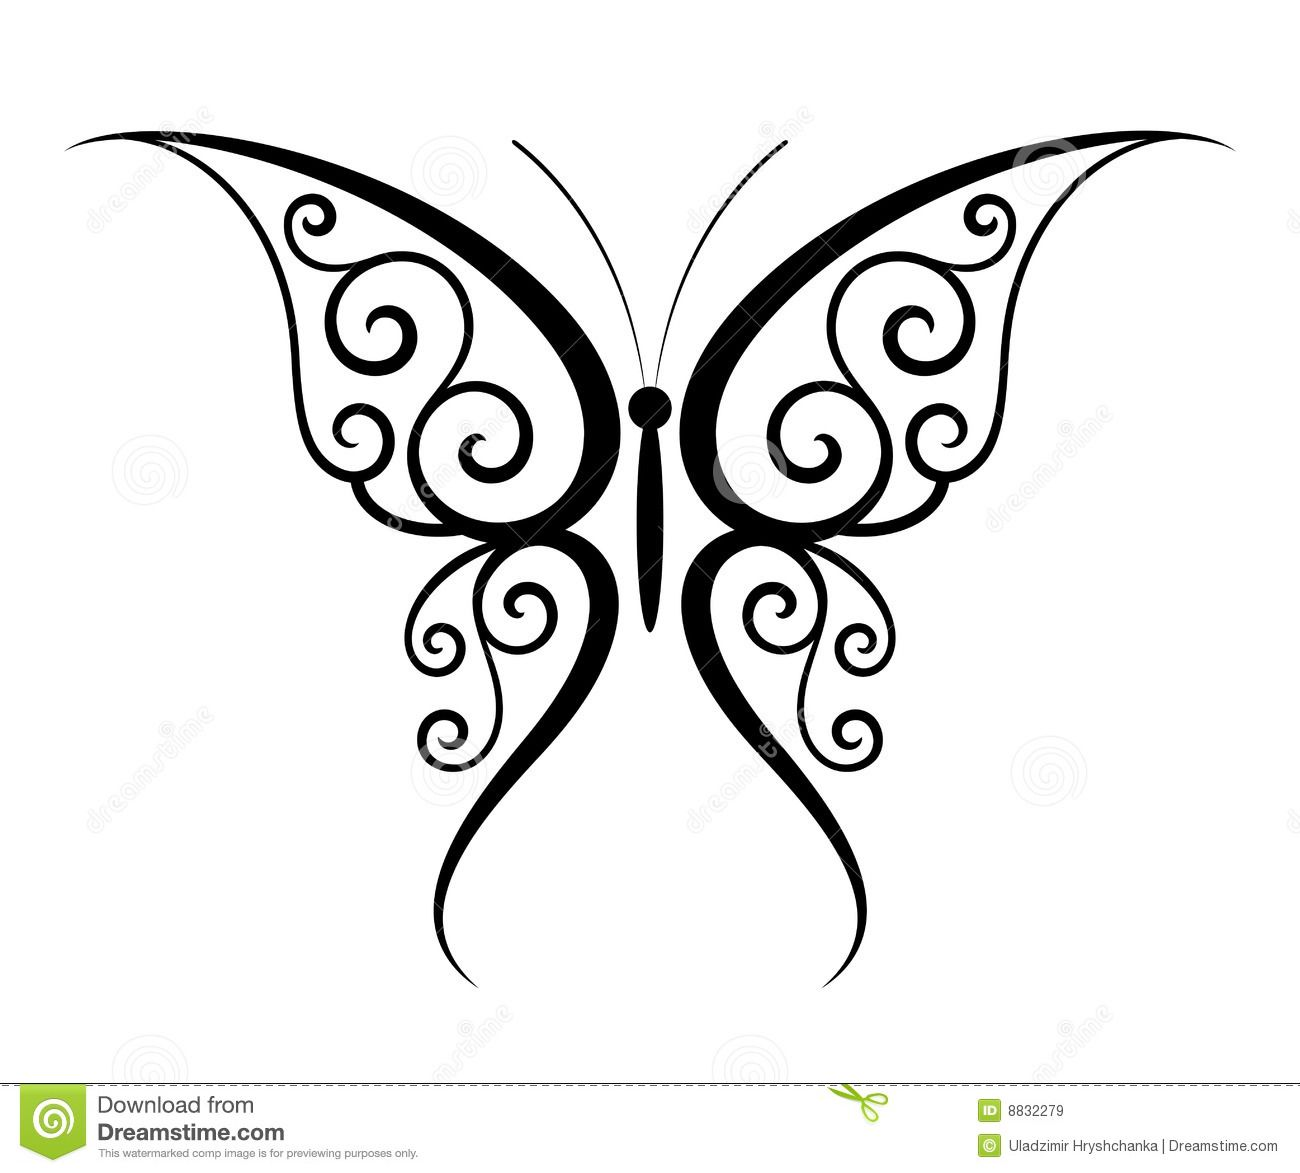 Butterfly Tattoo Download From Sfover 51 Million High Quality Stock Photos Images Vector Butterfly Stencil Butterfly Tattoo Designs Tribal Butterfly Tattoo